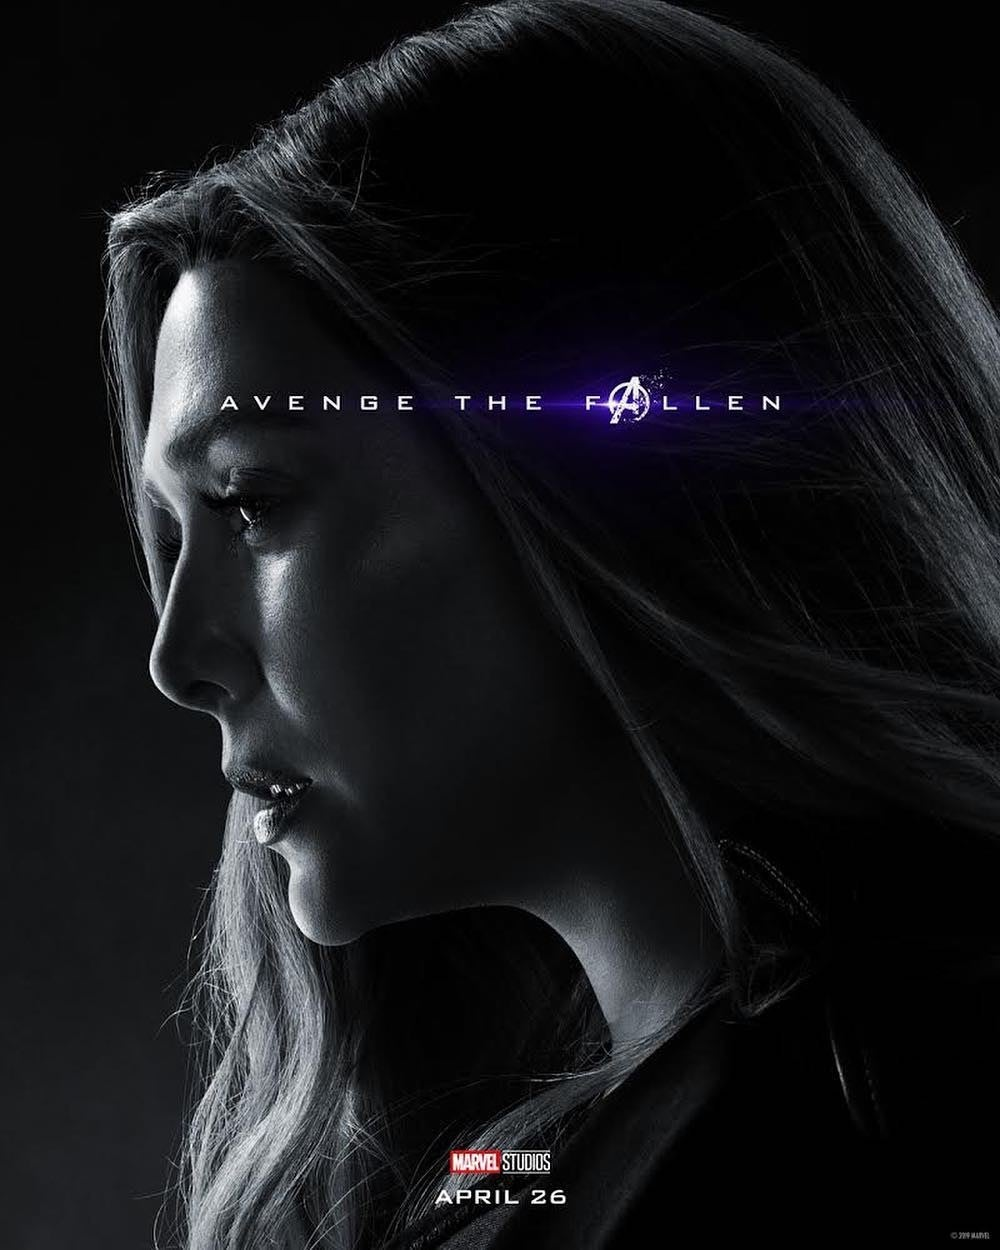 Avengers Endgame Posters Dead Characters - Scarlet Witch